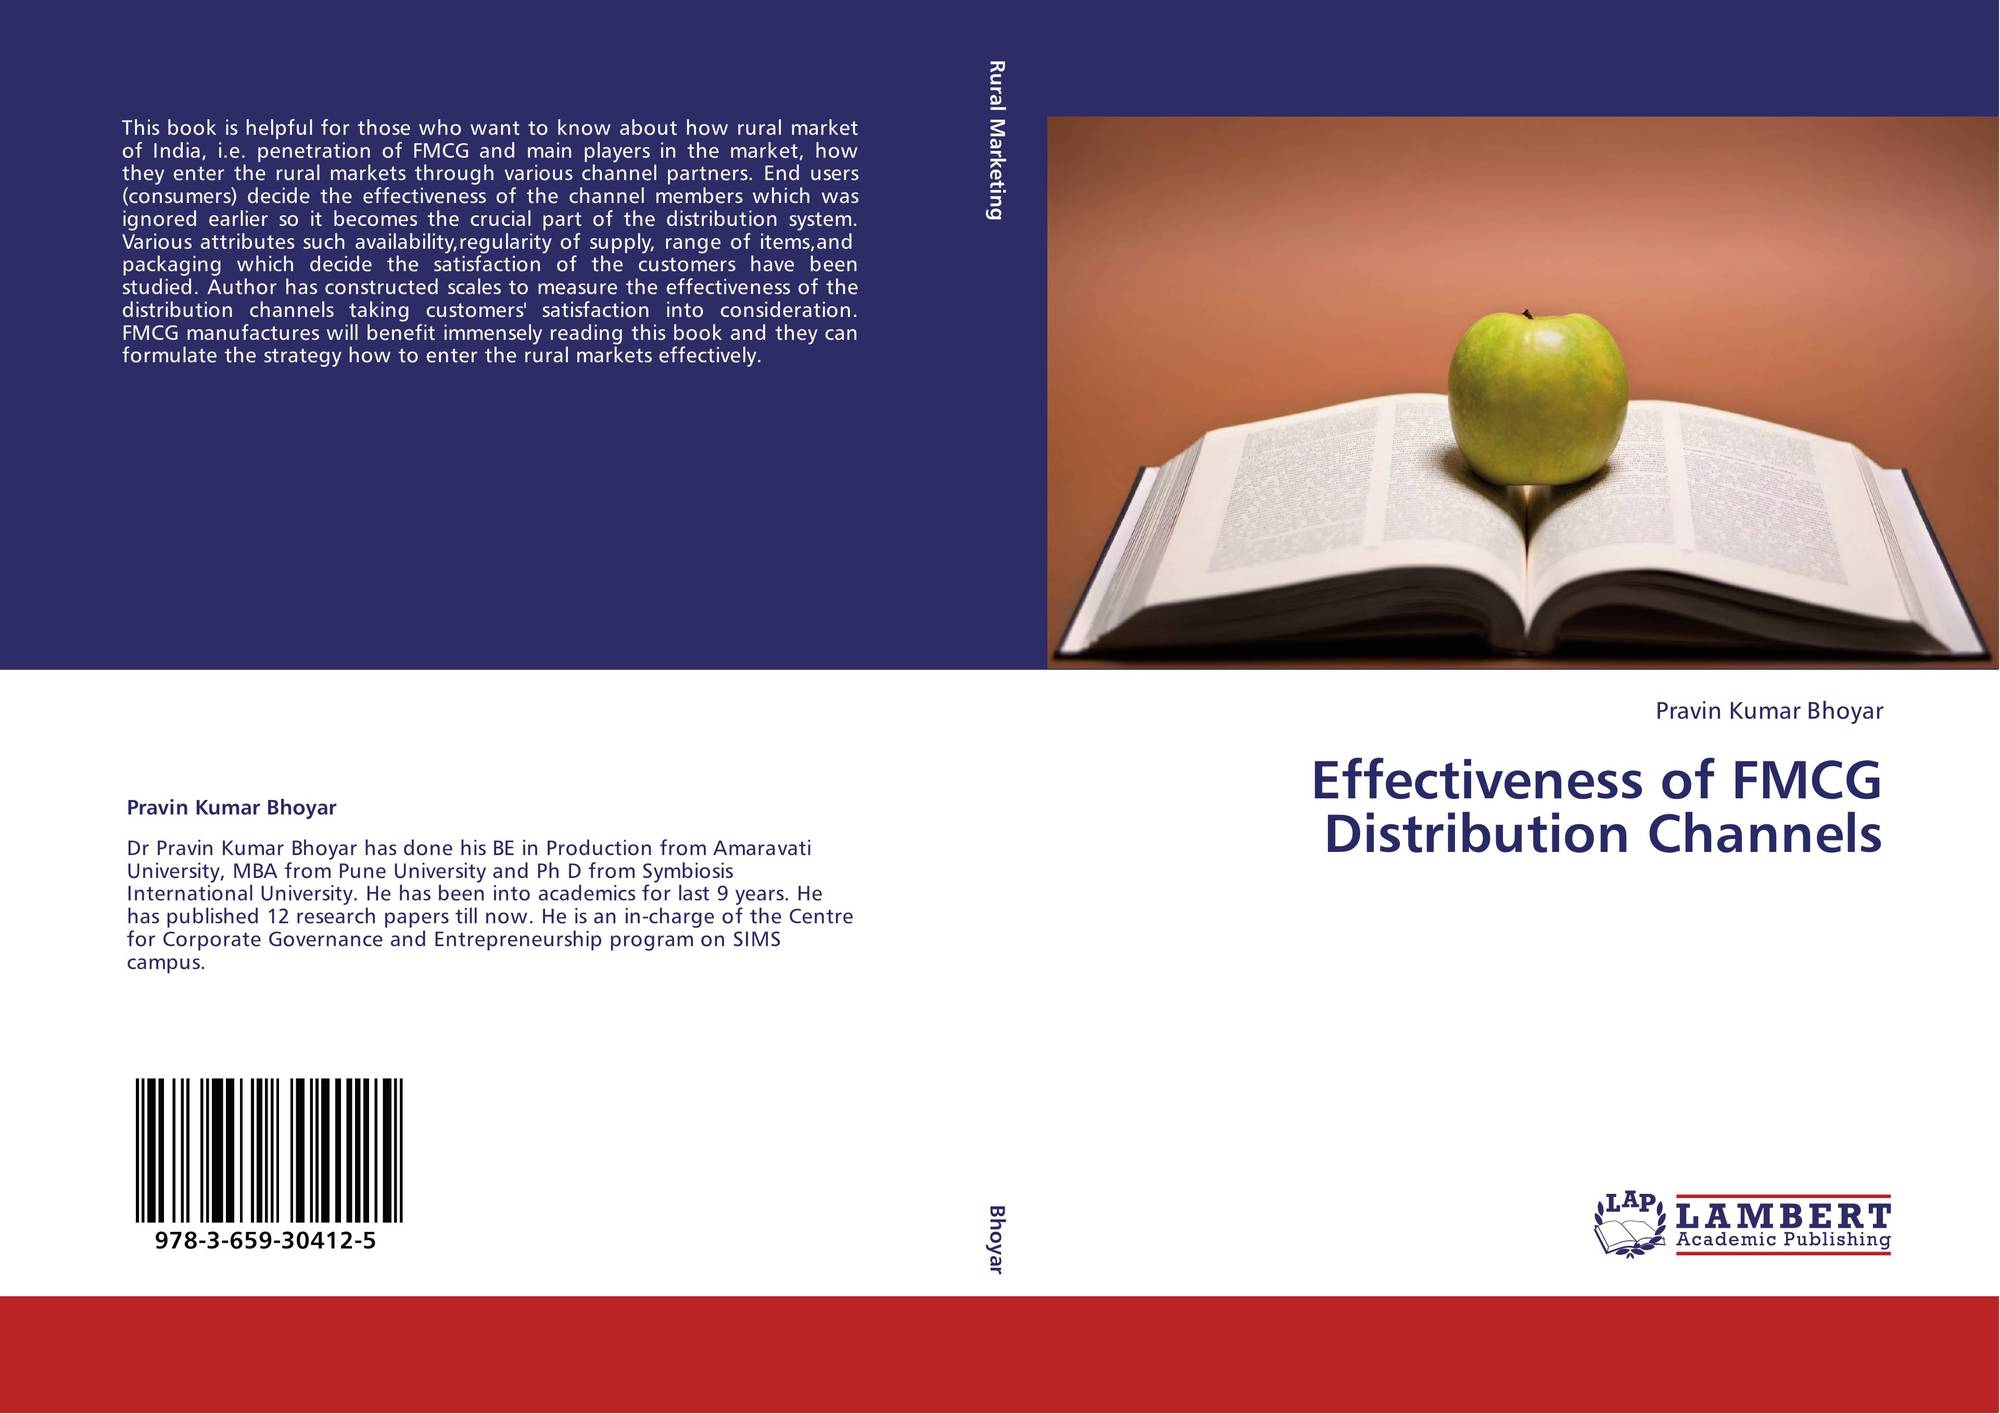 fmcg distribution strategies in rural india On one side are the fast-moving consumer goods are consumers in rural india  is huge for companies that develop effective rural marketing strategies.